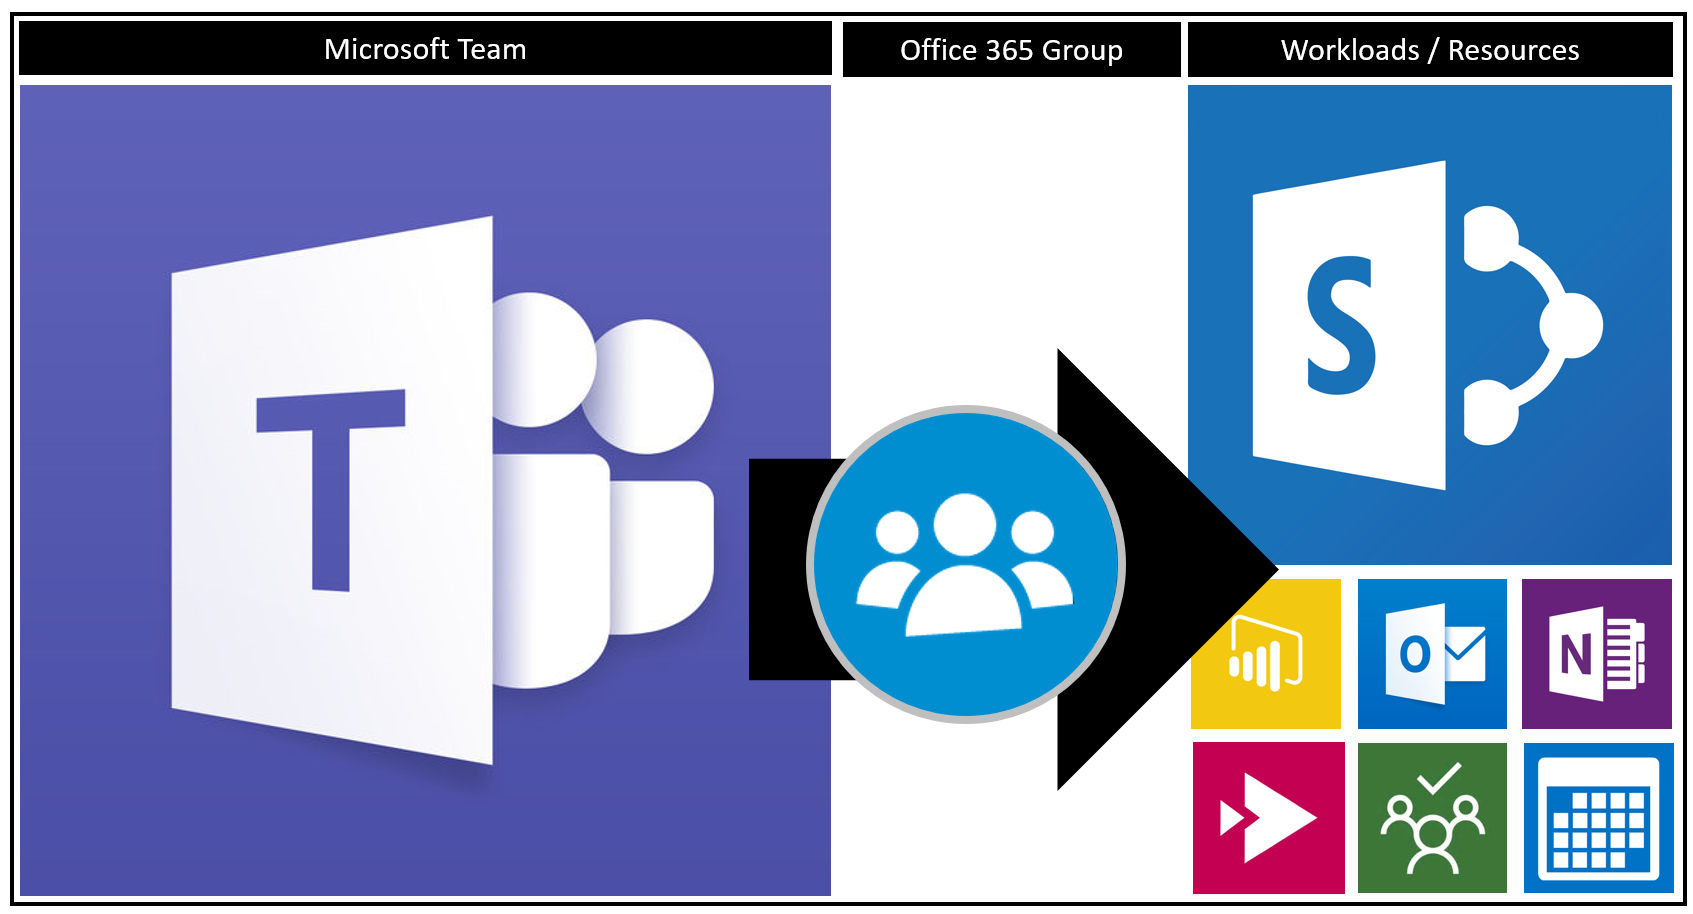 Microsoft365 Day 135: Microsoft Teams and Office 365 Groups